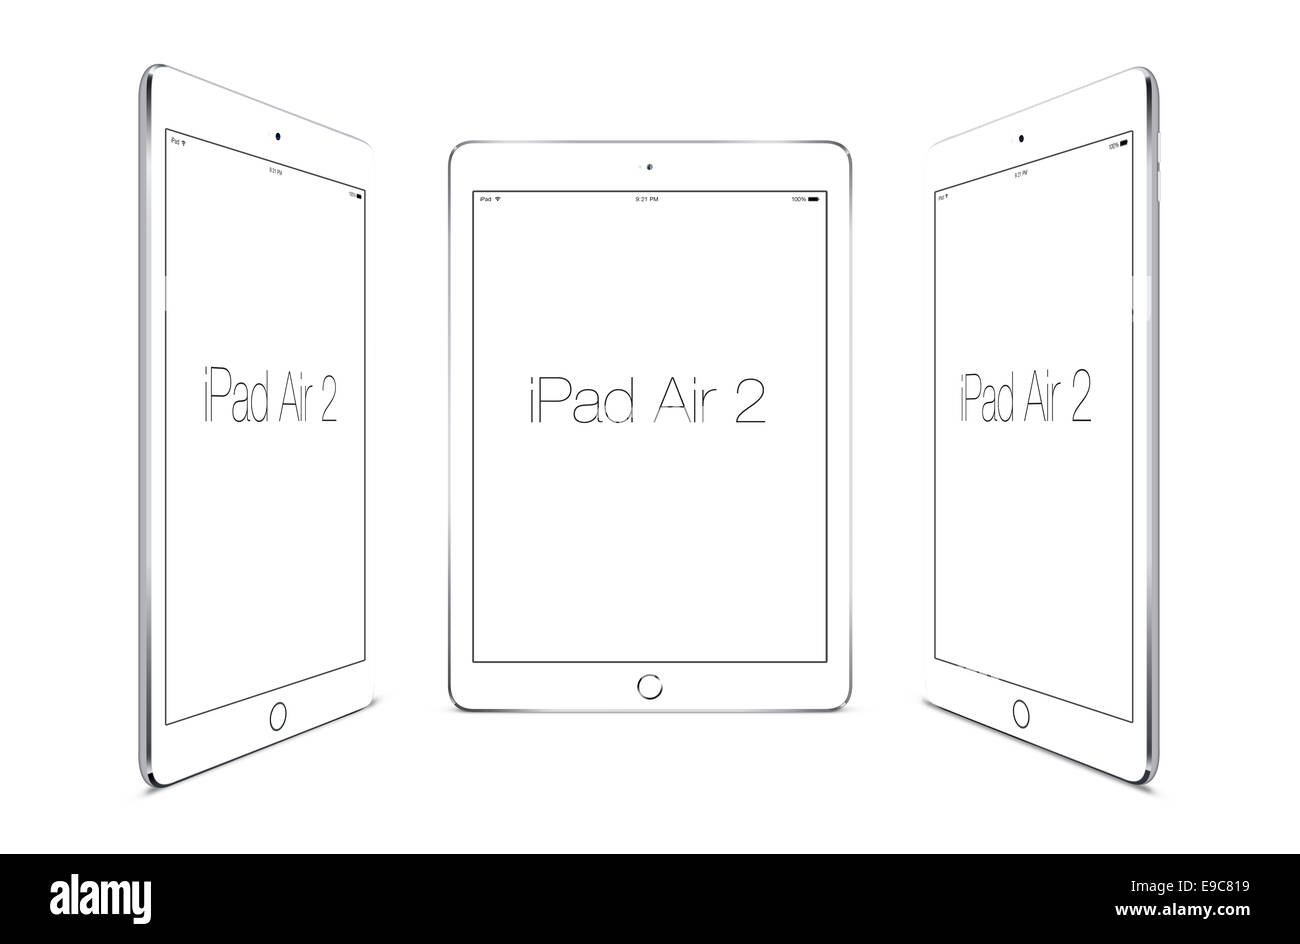 Tablets ipad air 2 silver, digitally generated artwork. - Stock Image